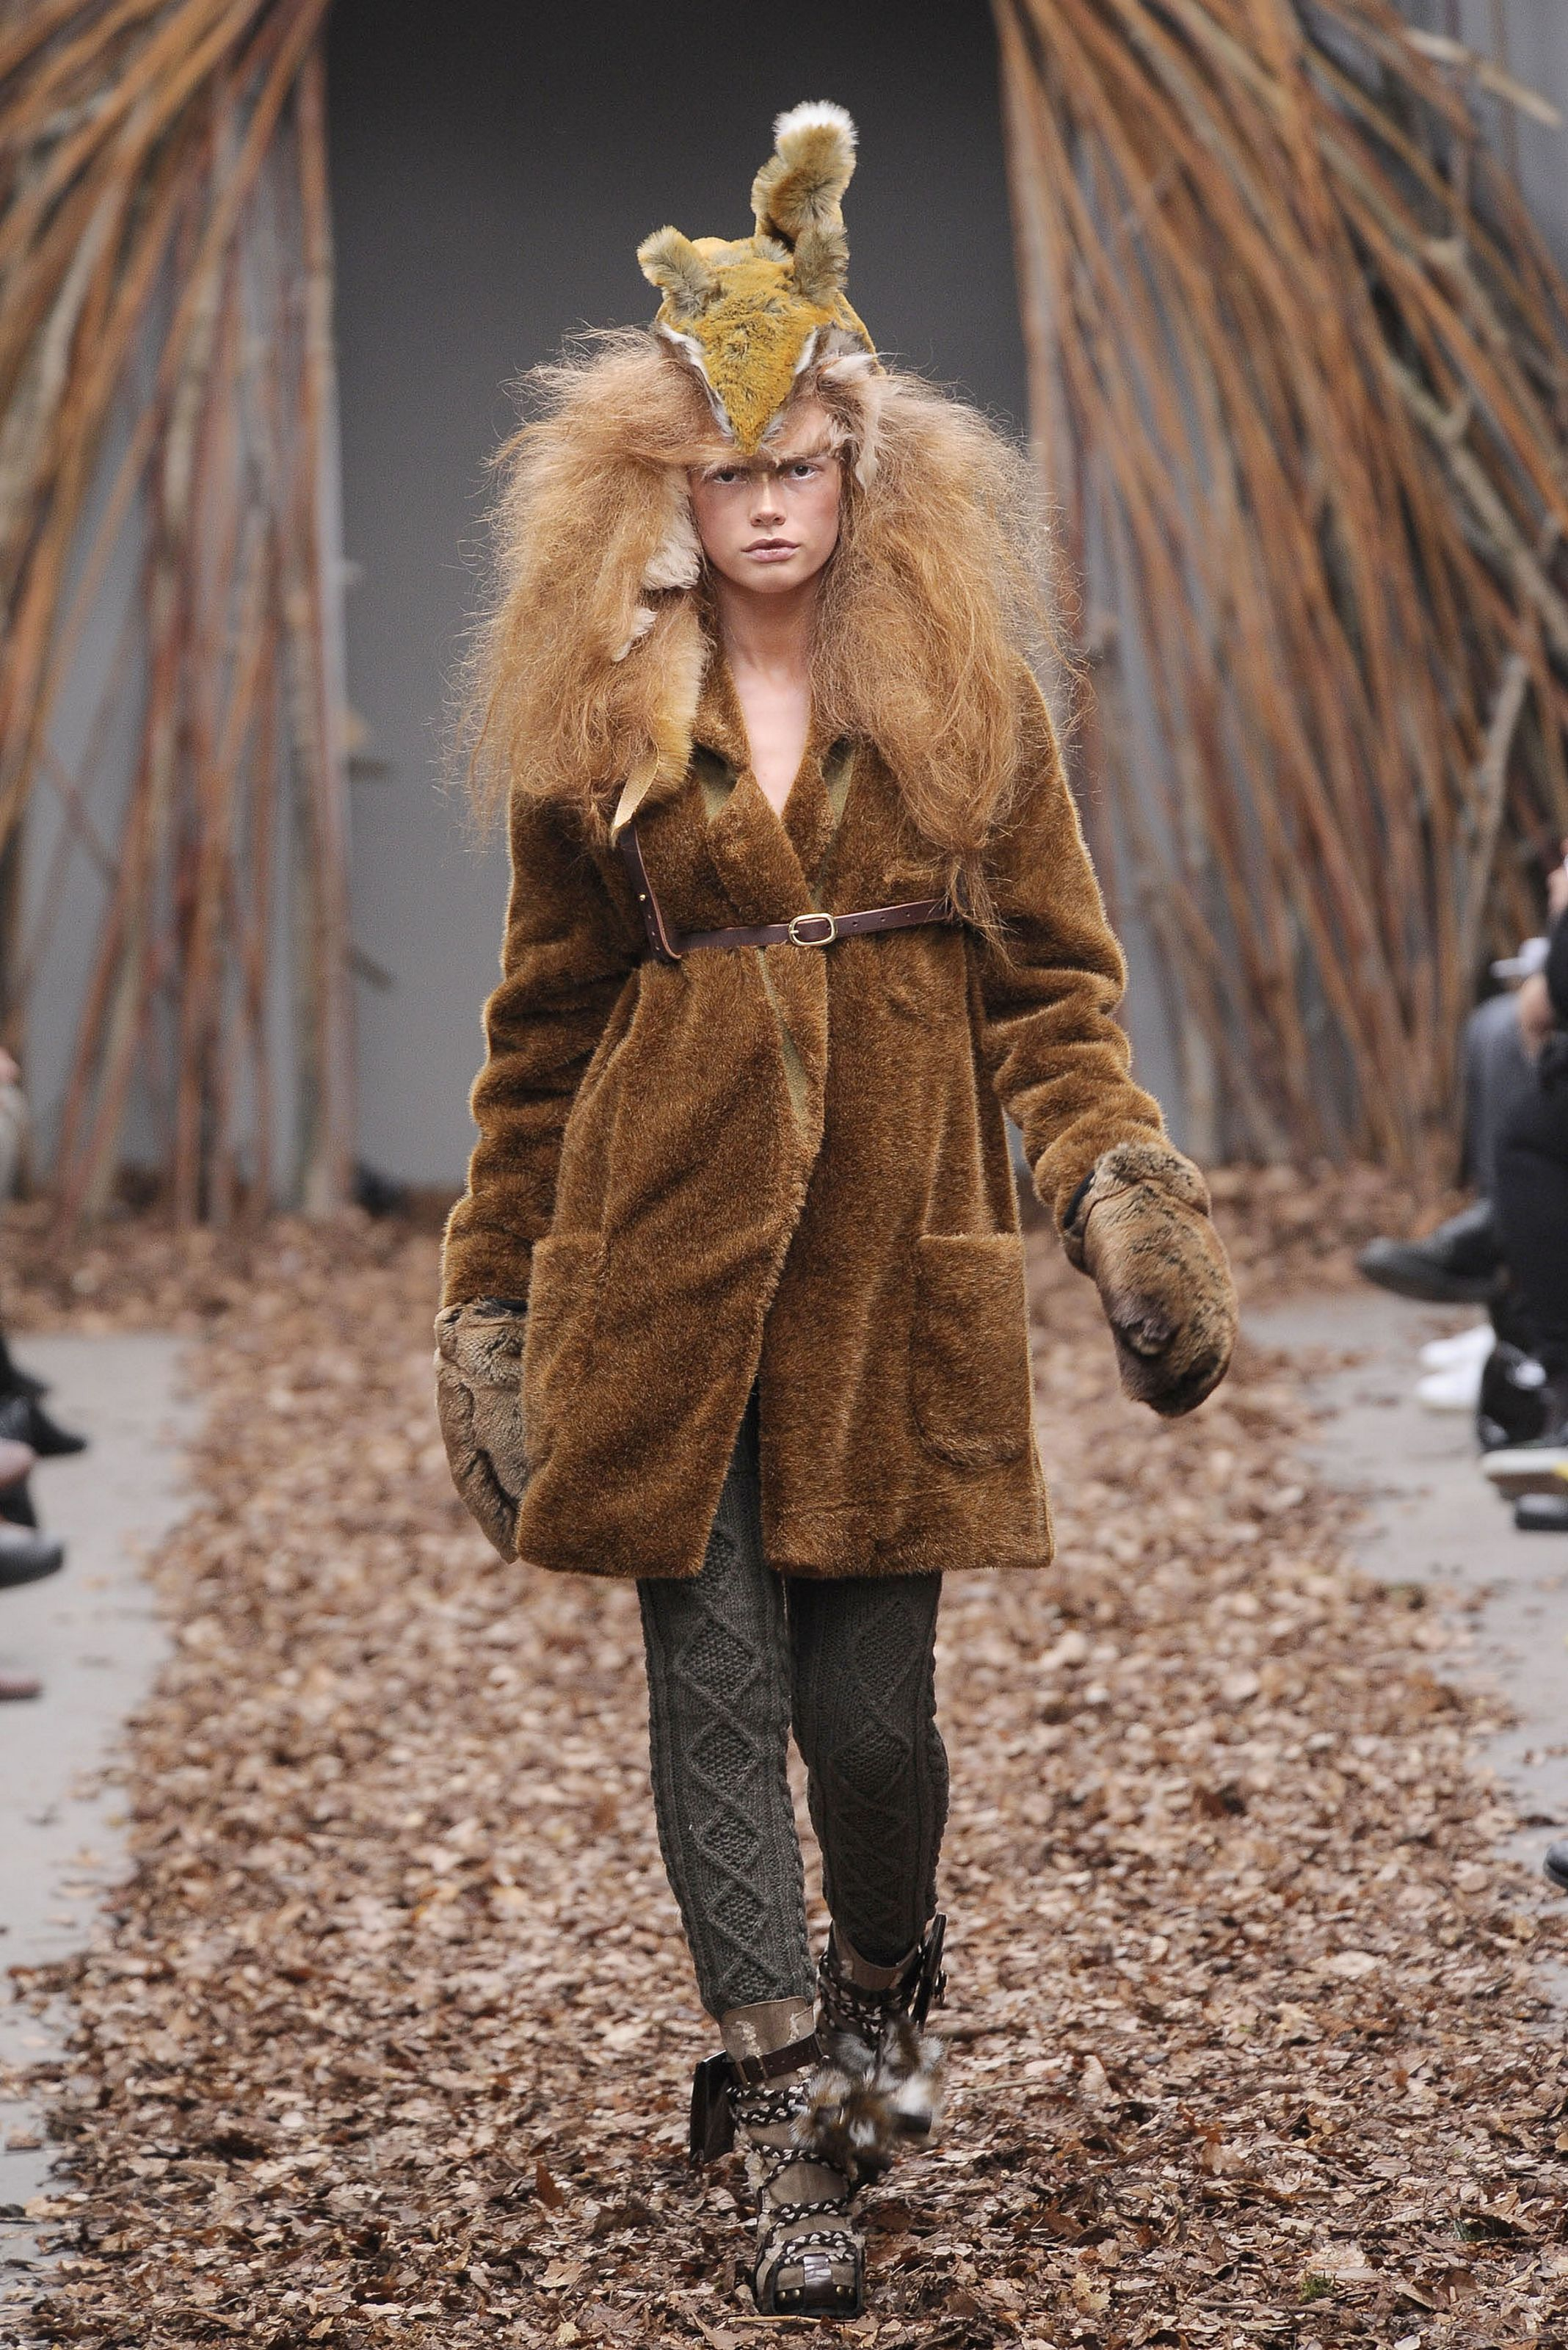 Topshop Unique Show At London Fashion: Hey Crazy….a DELIBERATE CREATION Of My